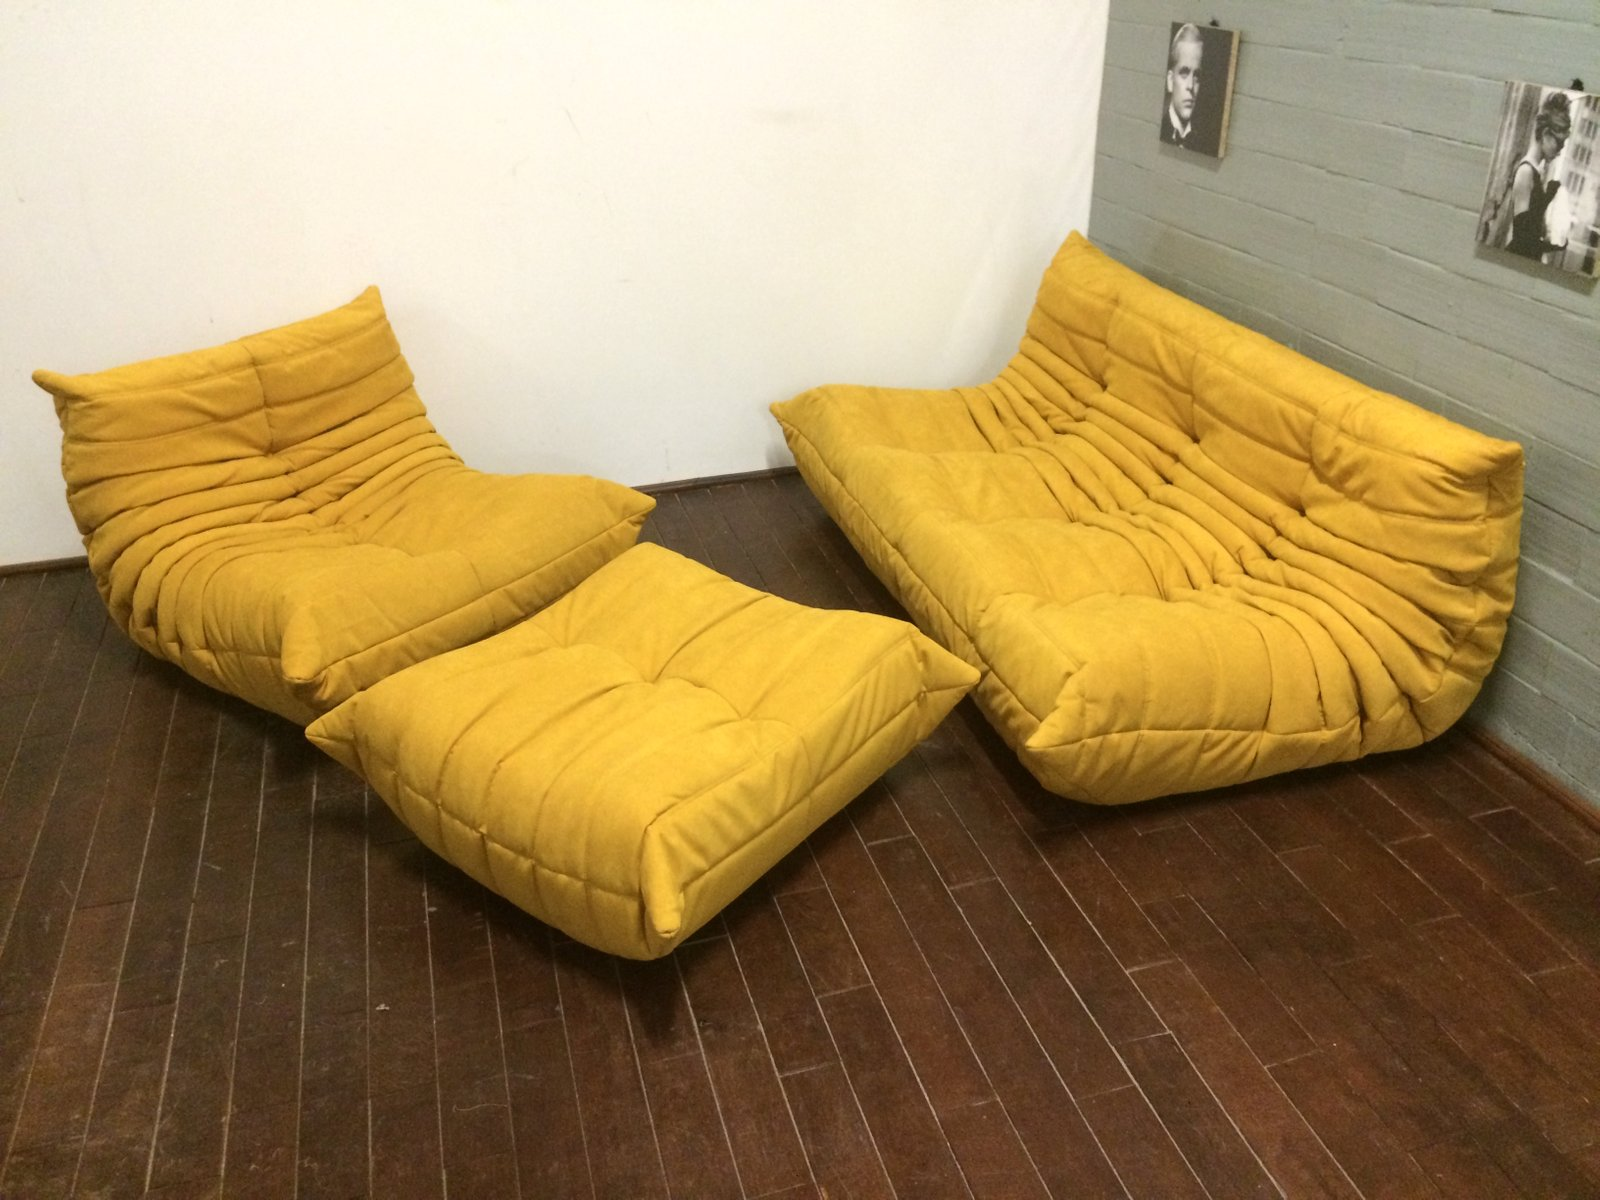 set de canap togo alcantara jaune par michel ducaroy pour ligne roset 1970s set de 3 en vente. Black Bedroom Furniture Sets. Home Design Ideas